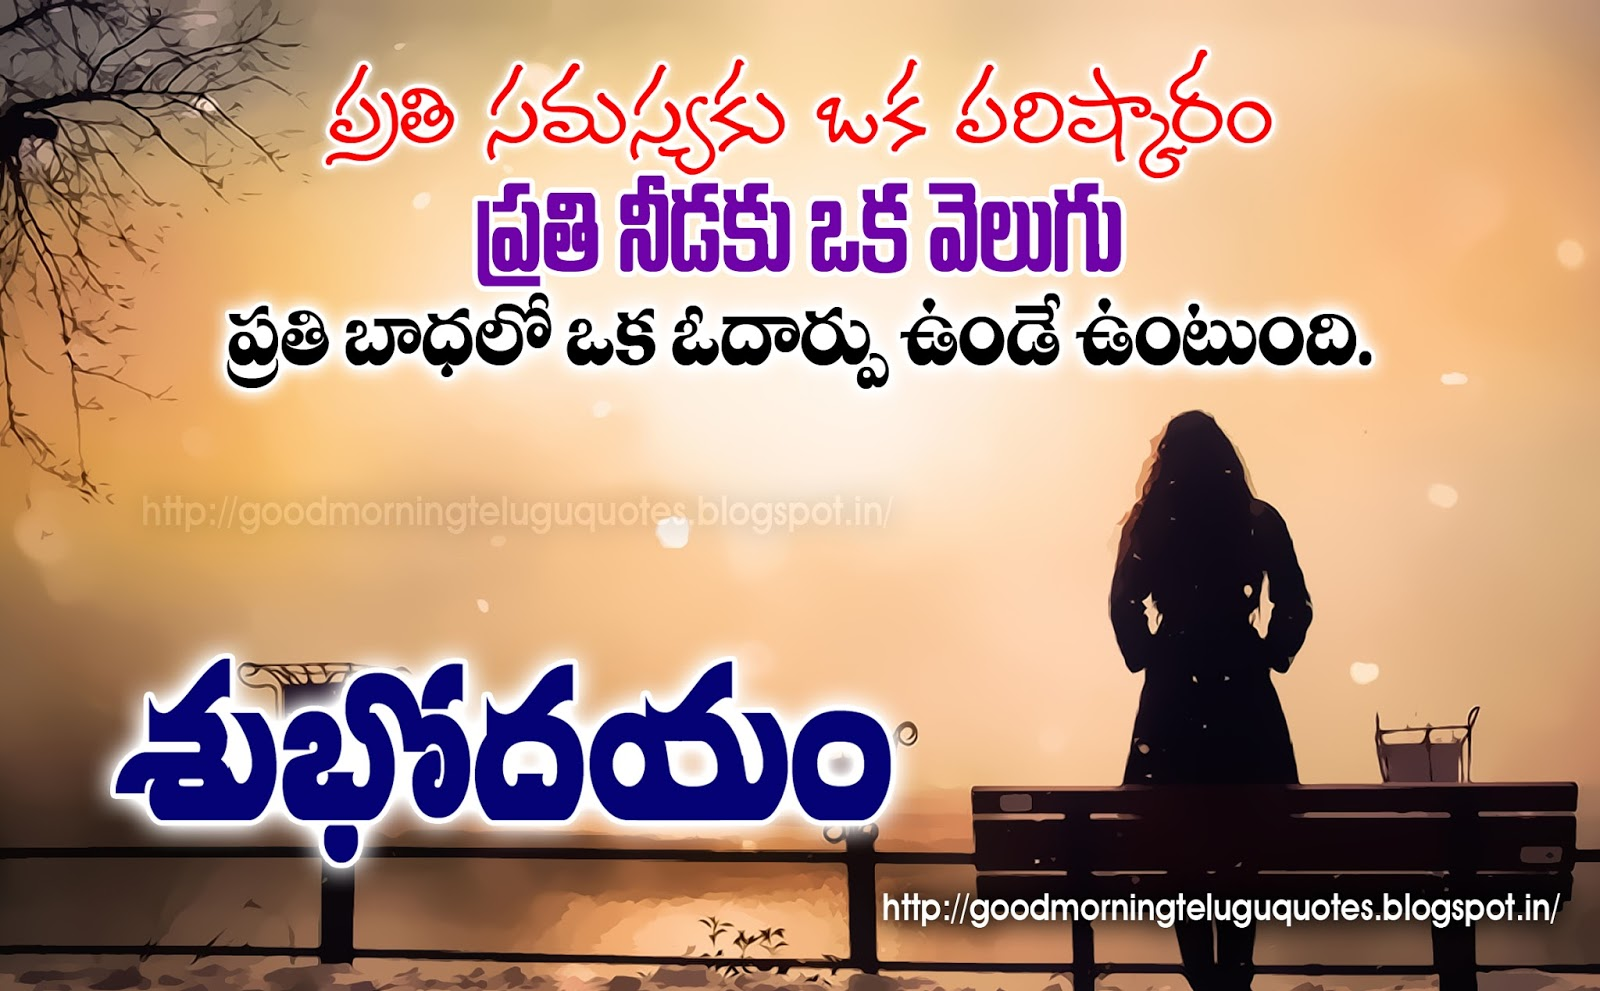 Good Morning Love Telugu : Latest telugu good morning quotes messages greetings